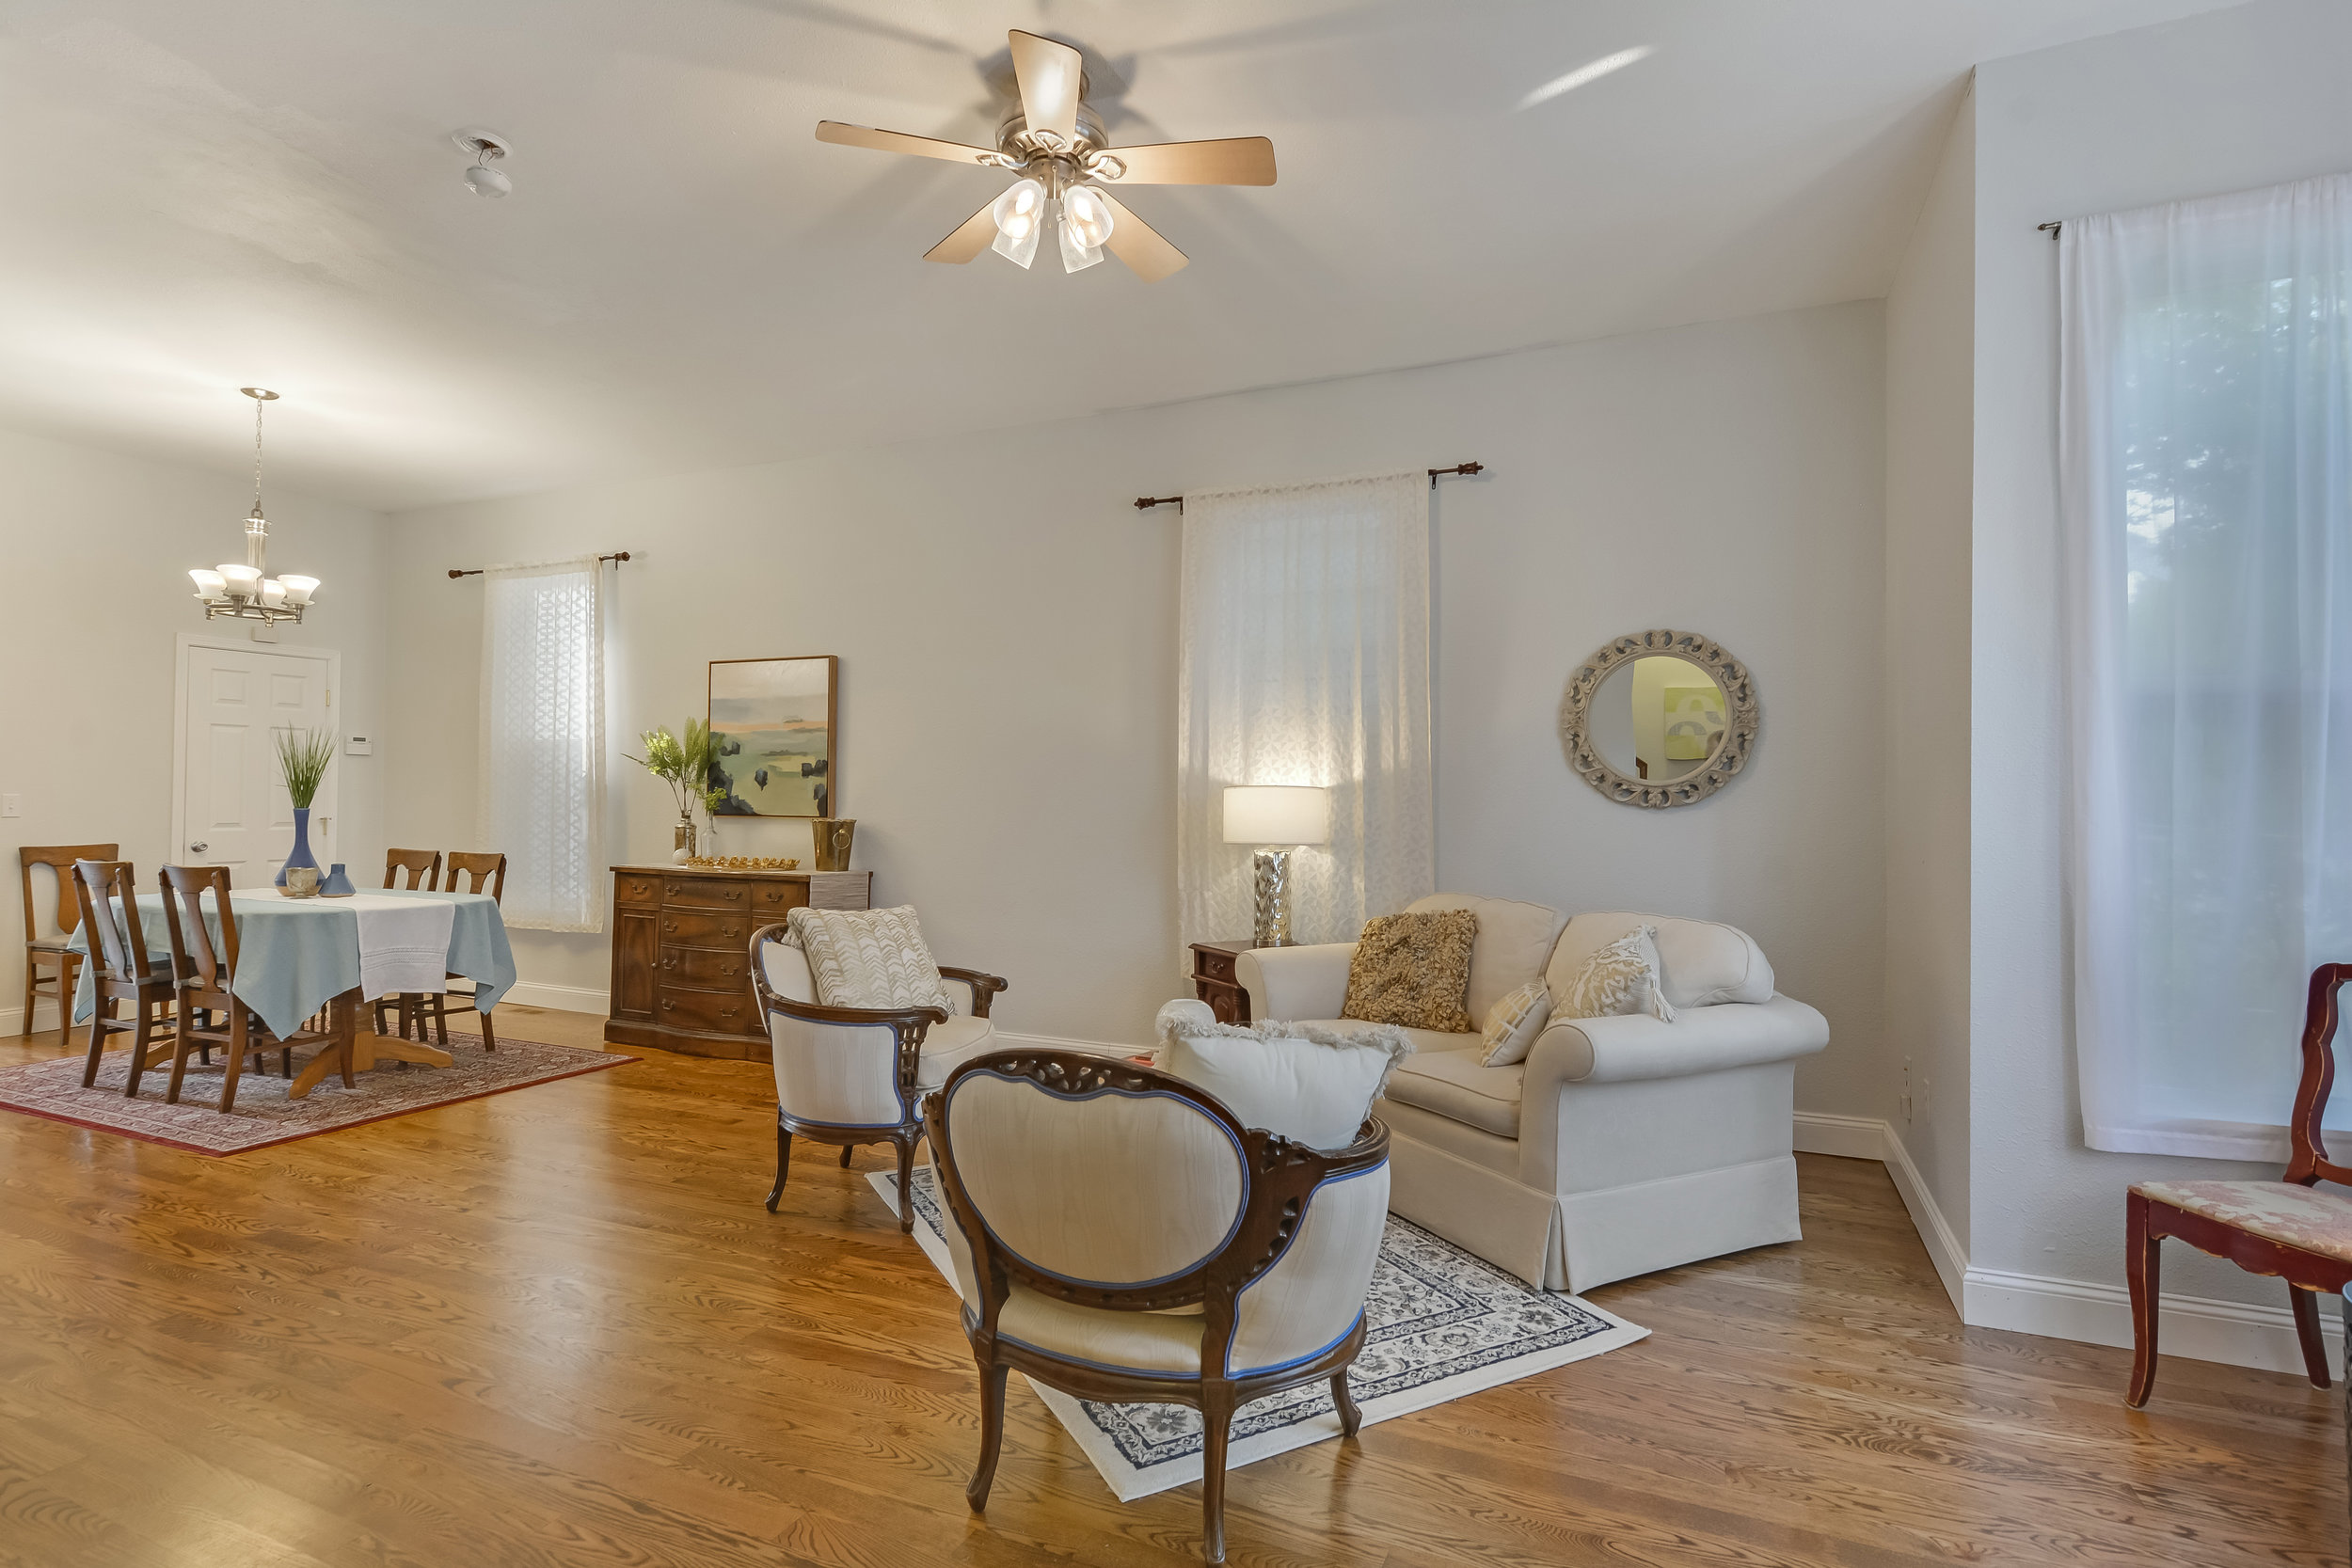 The open living room is brightened by tall windows and kept comfortable all year with the air conditioning available throughout the house.